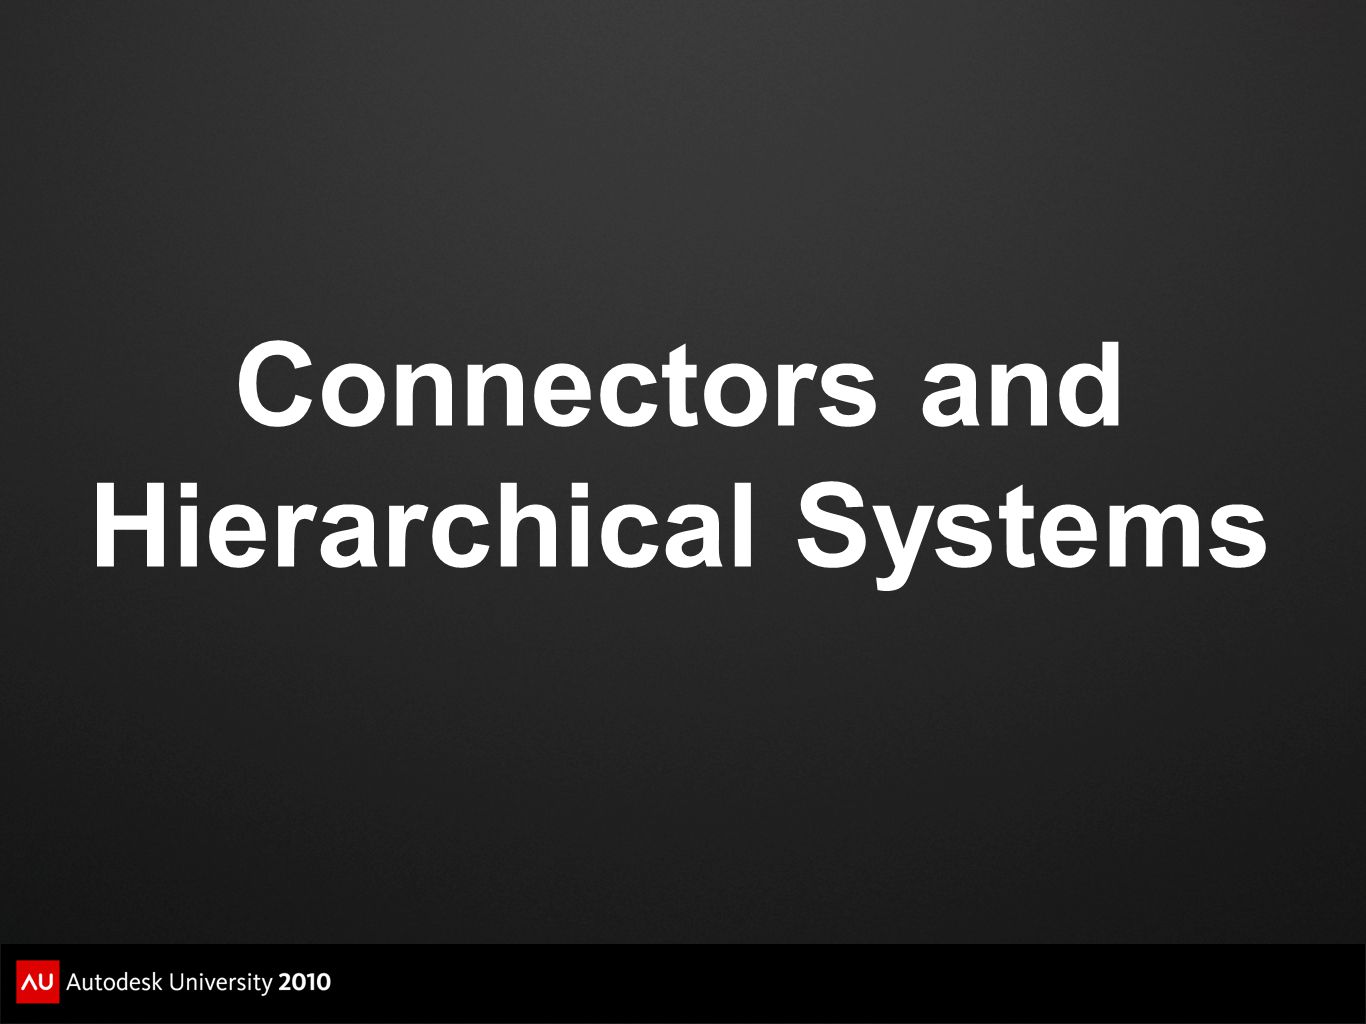 Connectors and Hierarchical Systems